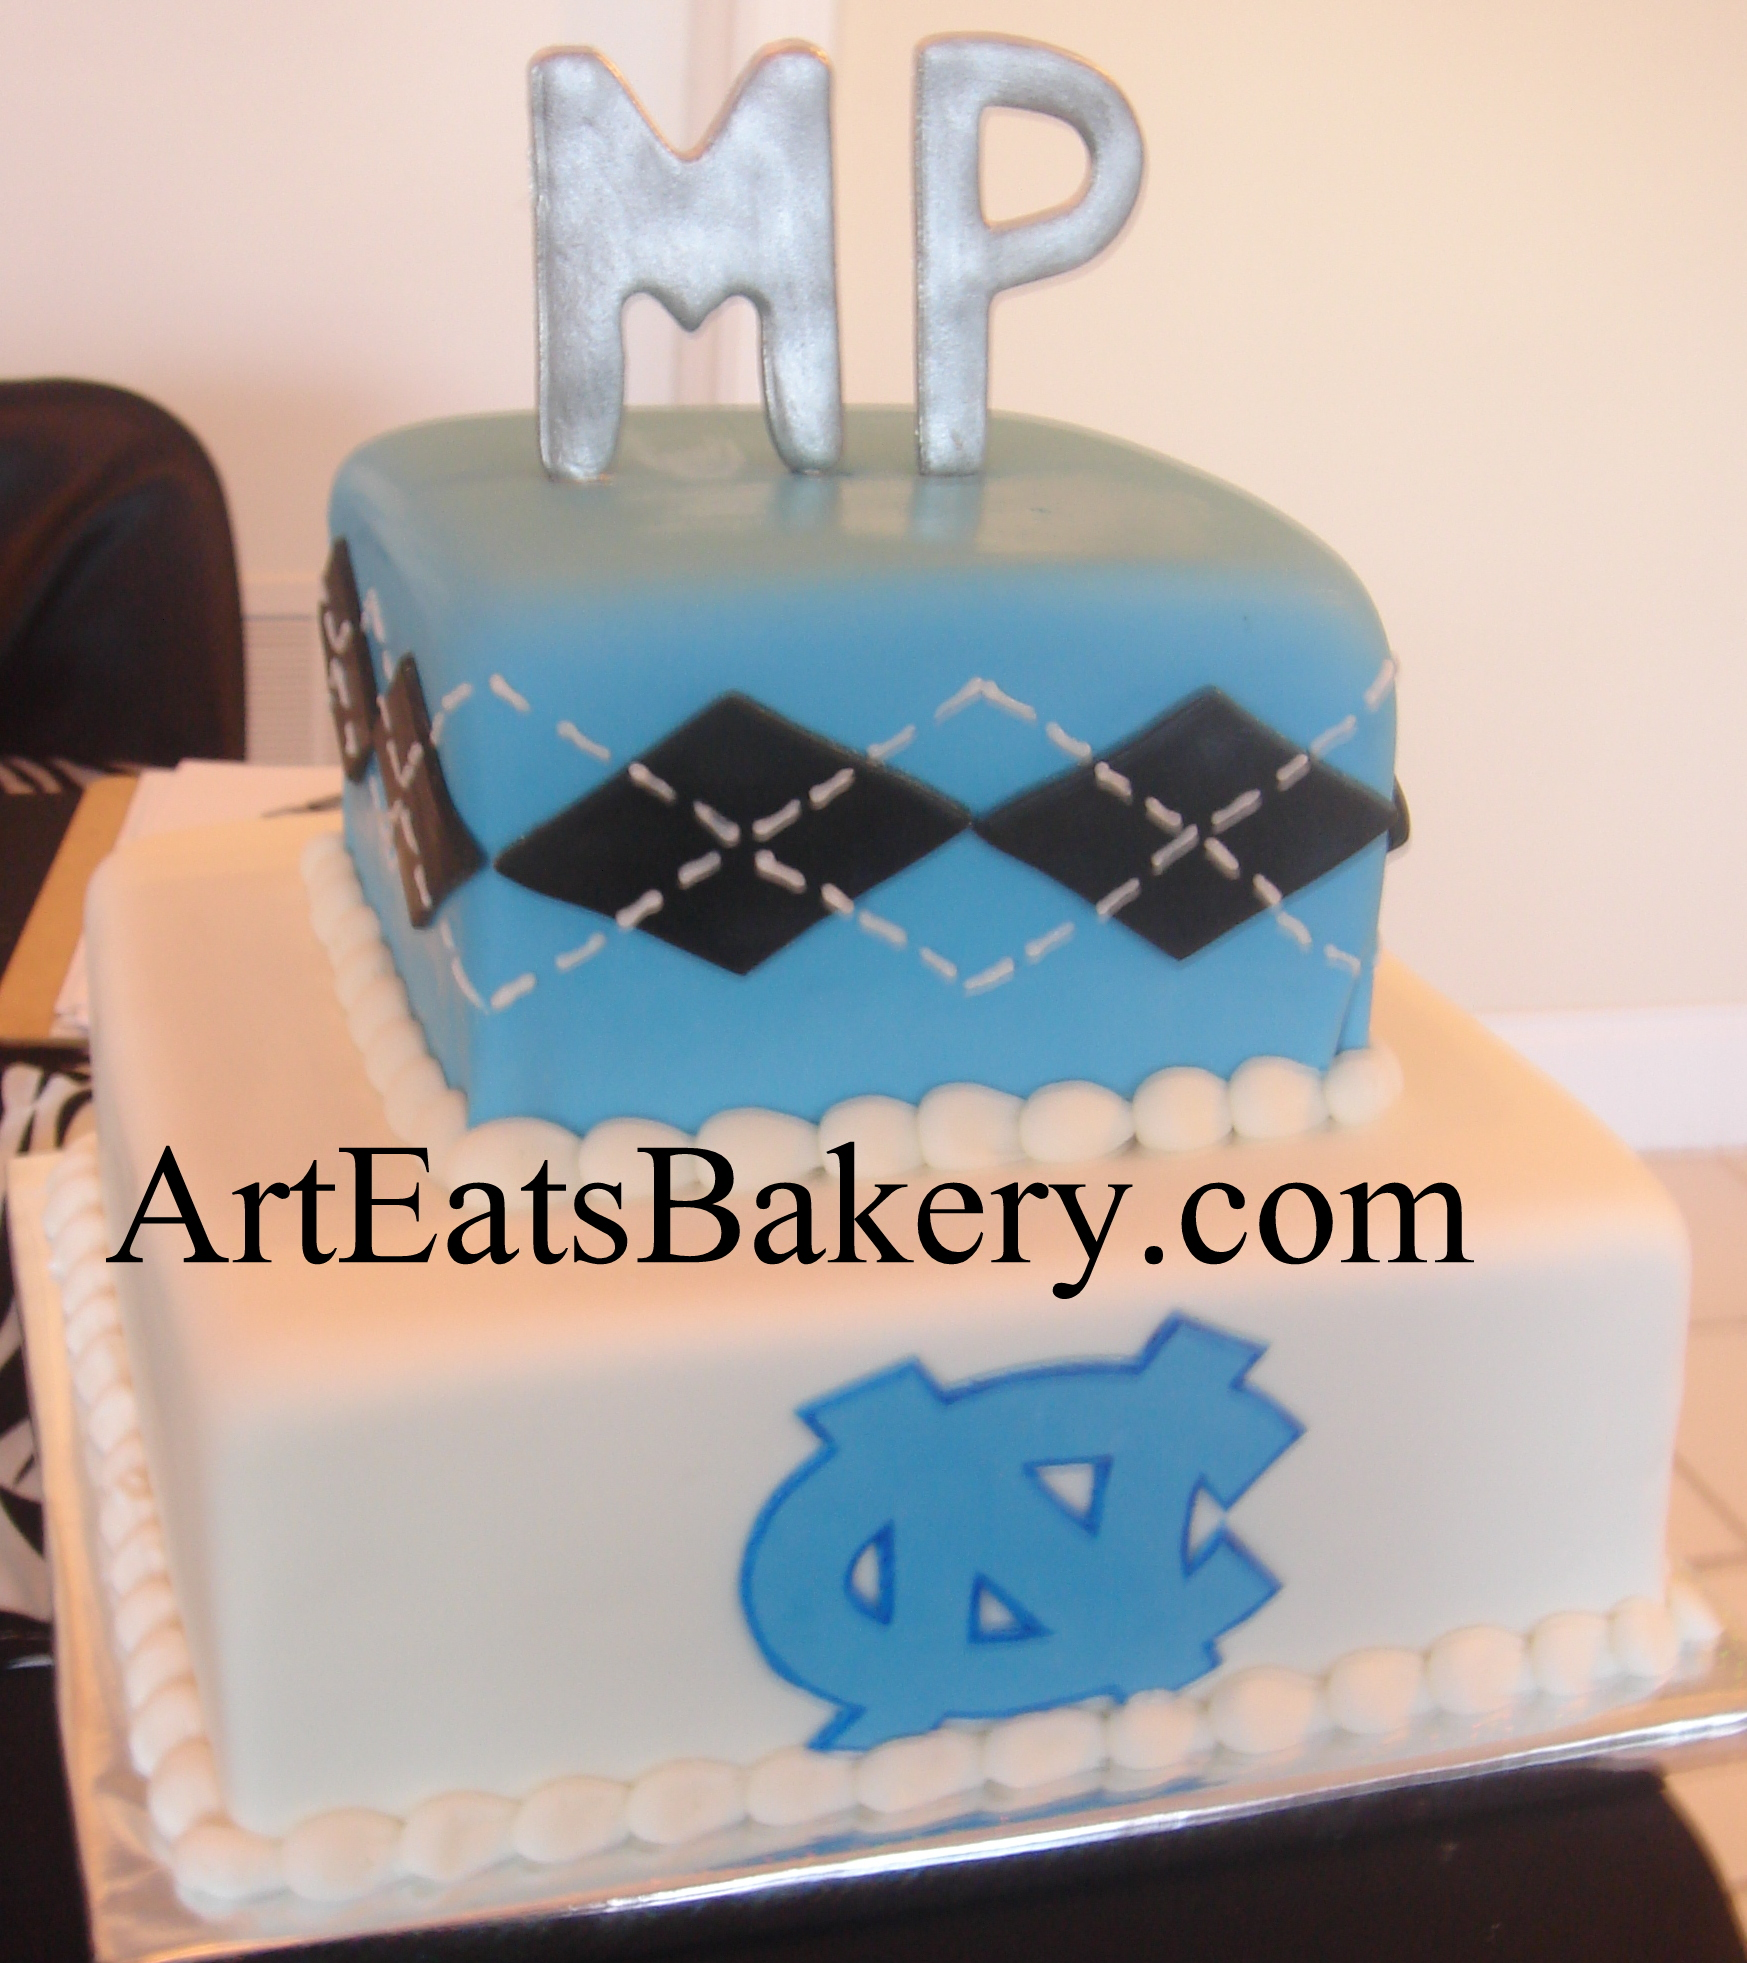 Two tier square blue, white and black men's creative custom University of North Carolina logo birthday cake design with silver monogram topper.jpg